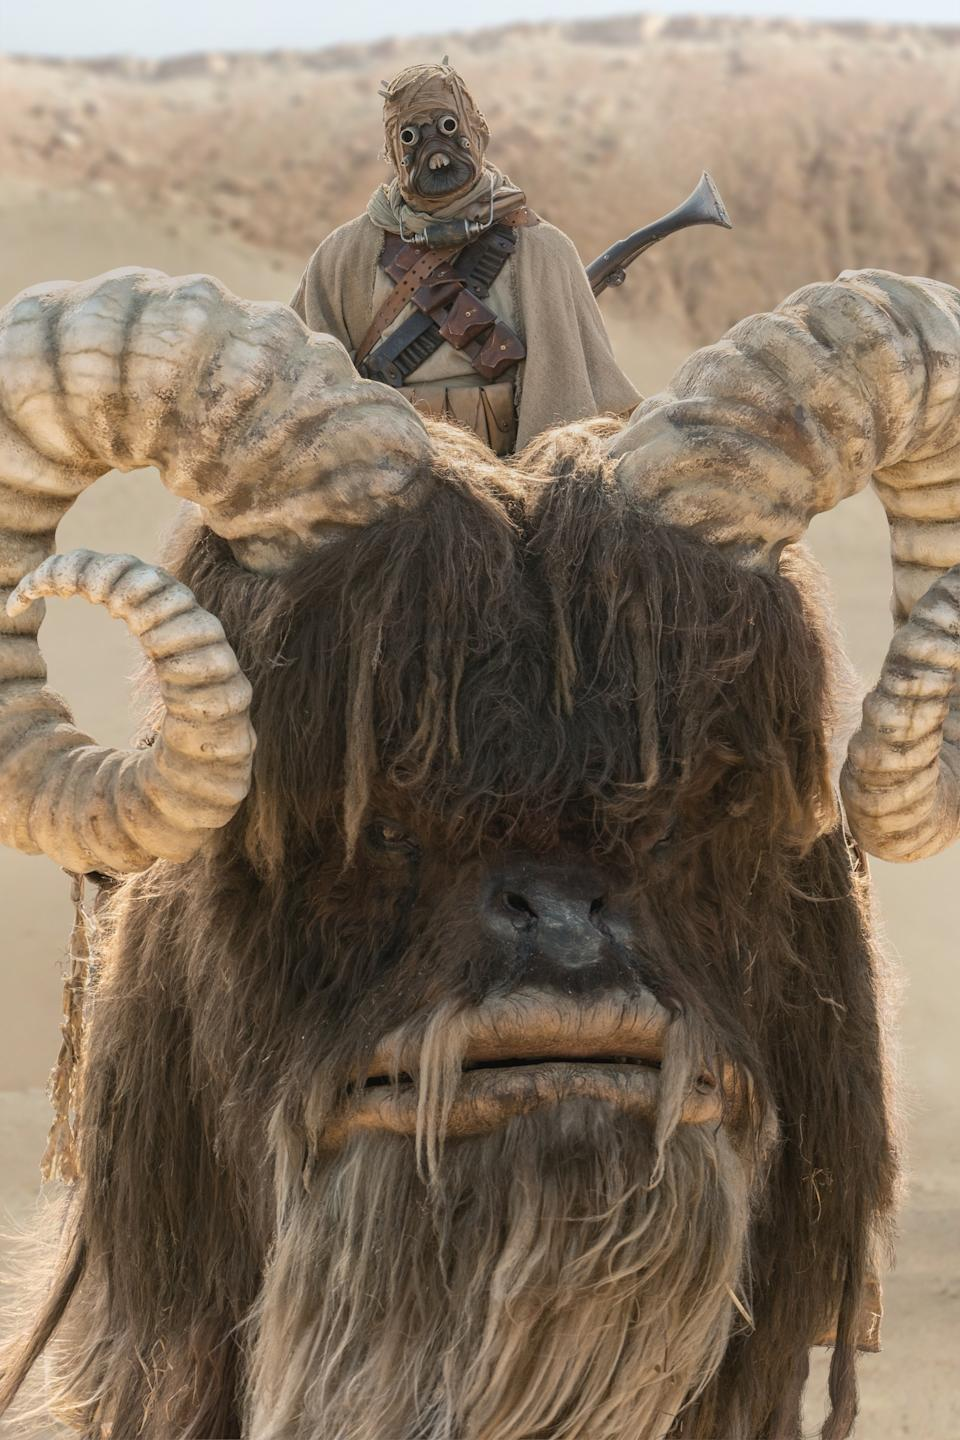 A Tusken Raider atop a Bantha in a still from The Mandalorian S2. (Disney+)